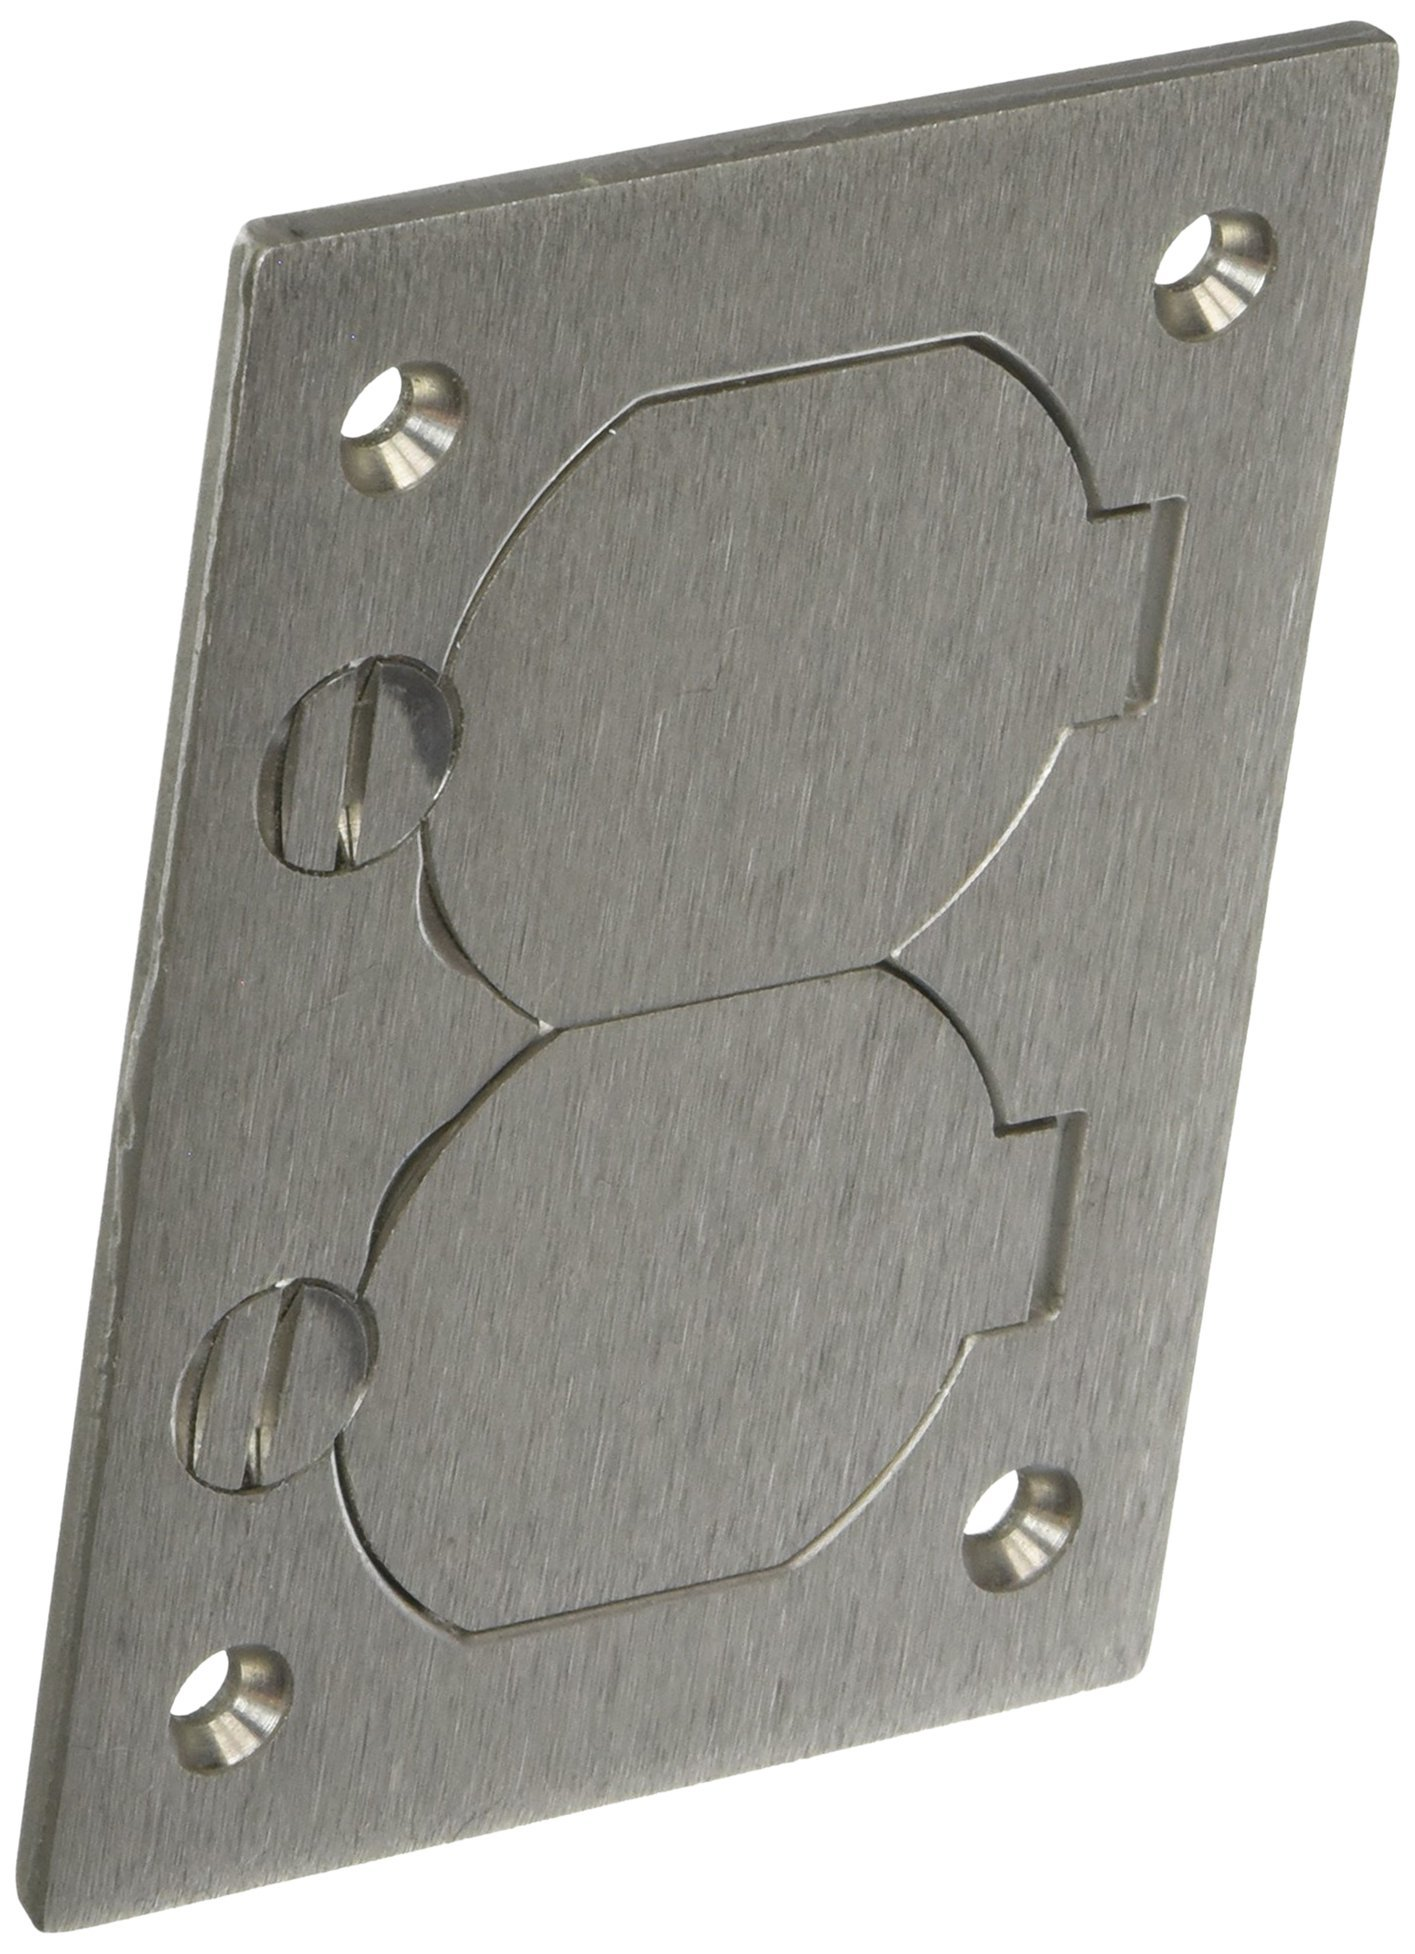 Hubbell Wiring Systems SA3825 Aluminum Round Floor Box Rectangle Duplex Flap Cover, 4-5/32'' Length x 2-63/64'' Width